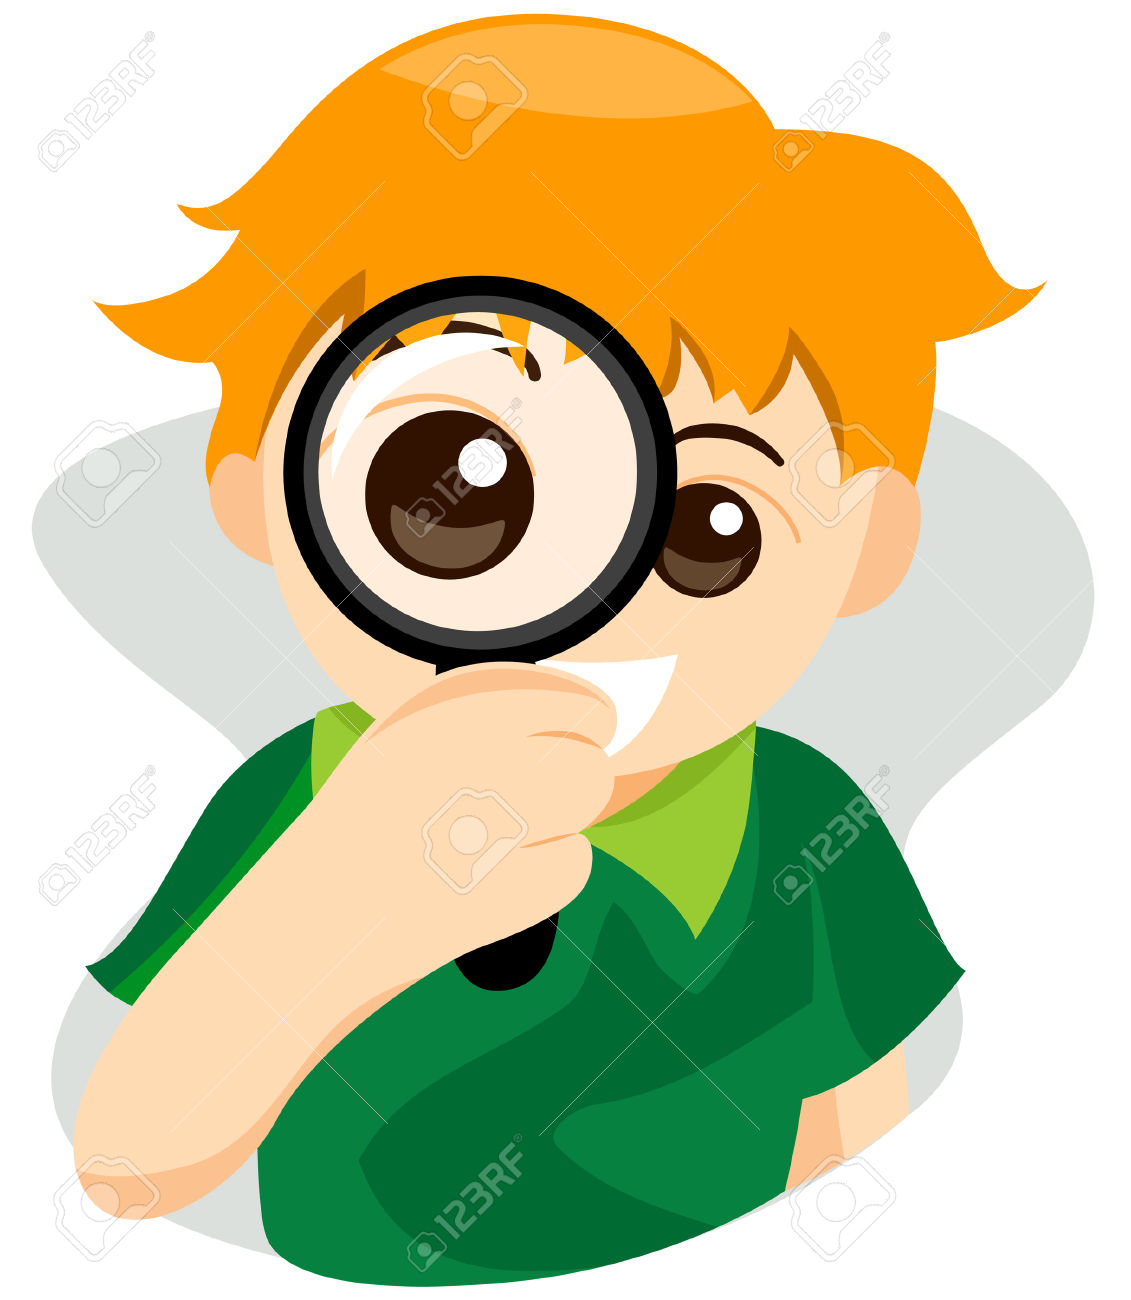 Boy with magnifying glass clipart clipground magnifying glass kid with clipping path royalty free cliparts voltagebd Gallery